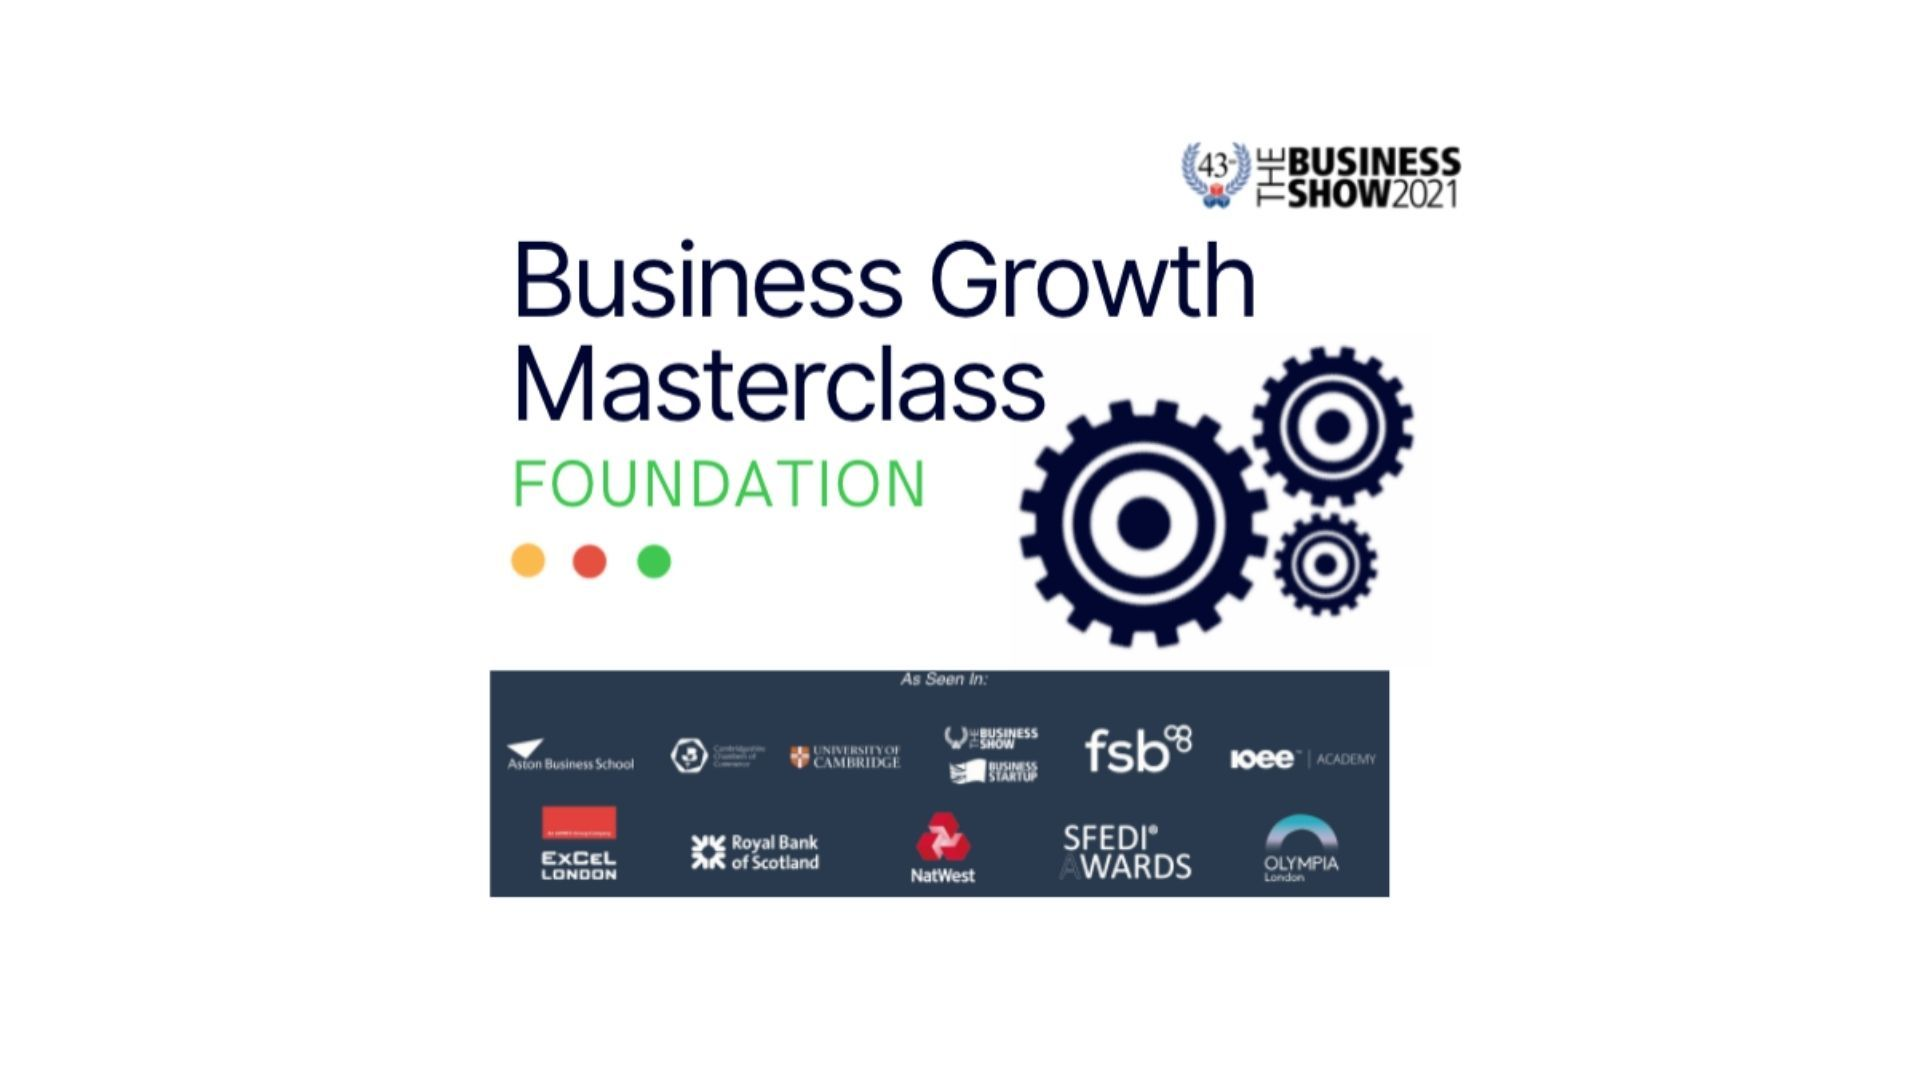 Business Growth Masterclasee